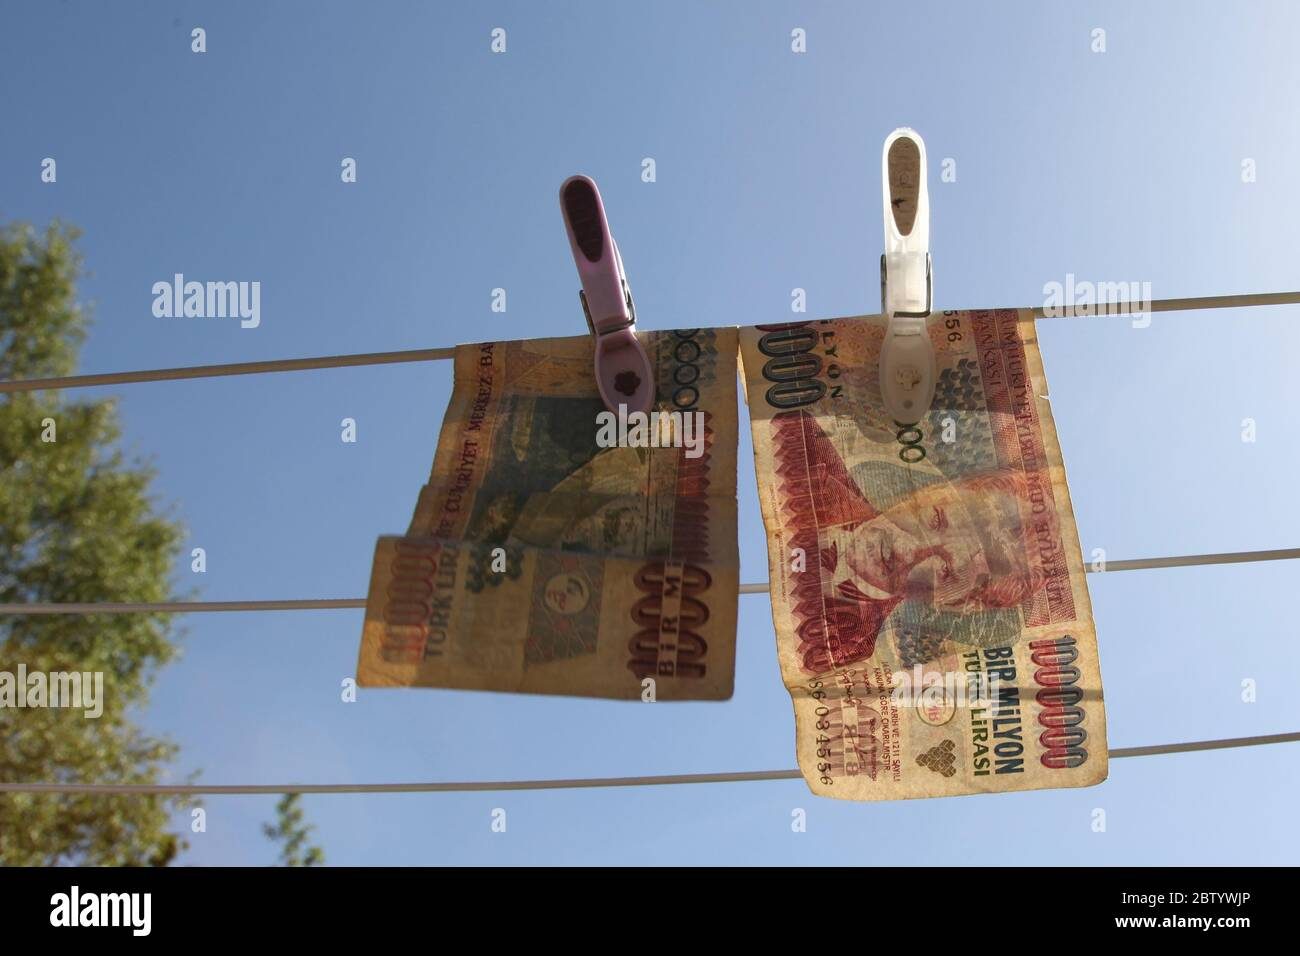 Turkish Lira Note 1 million lira, 1 BiR Milyon Turk Lirasi, hanging on washing line, money laundering concept Stock Photo